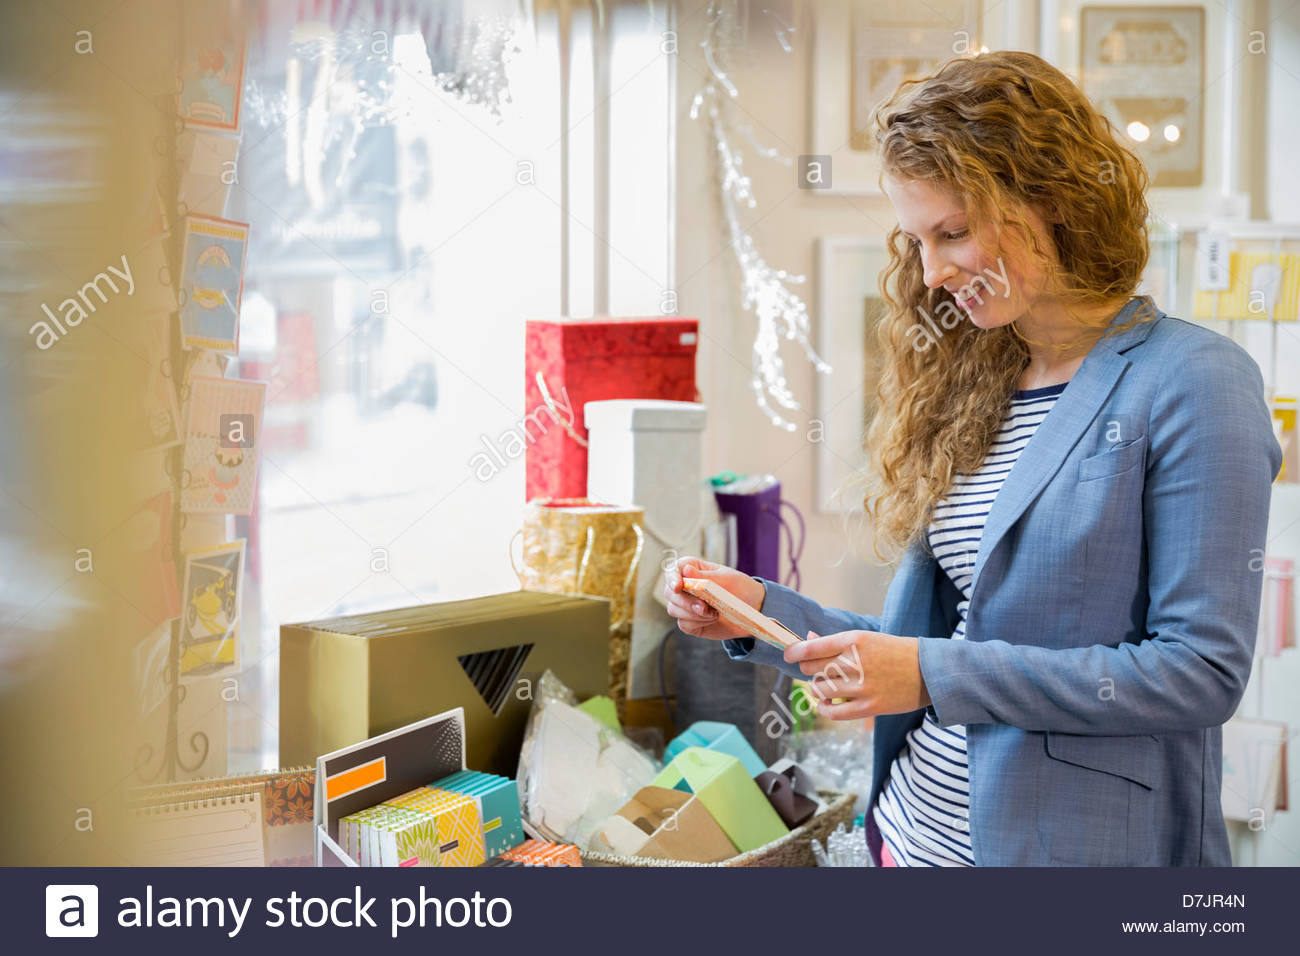 Young woman shopping at card store - Stock Image